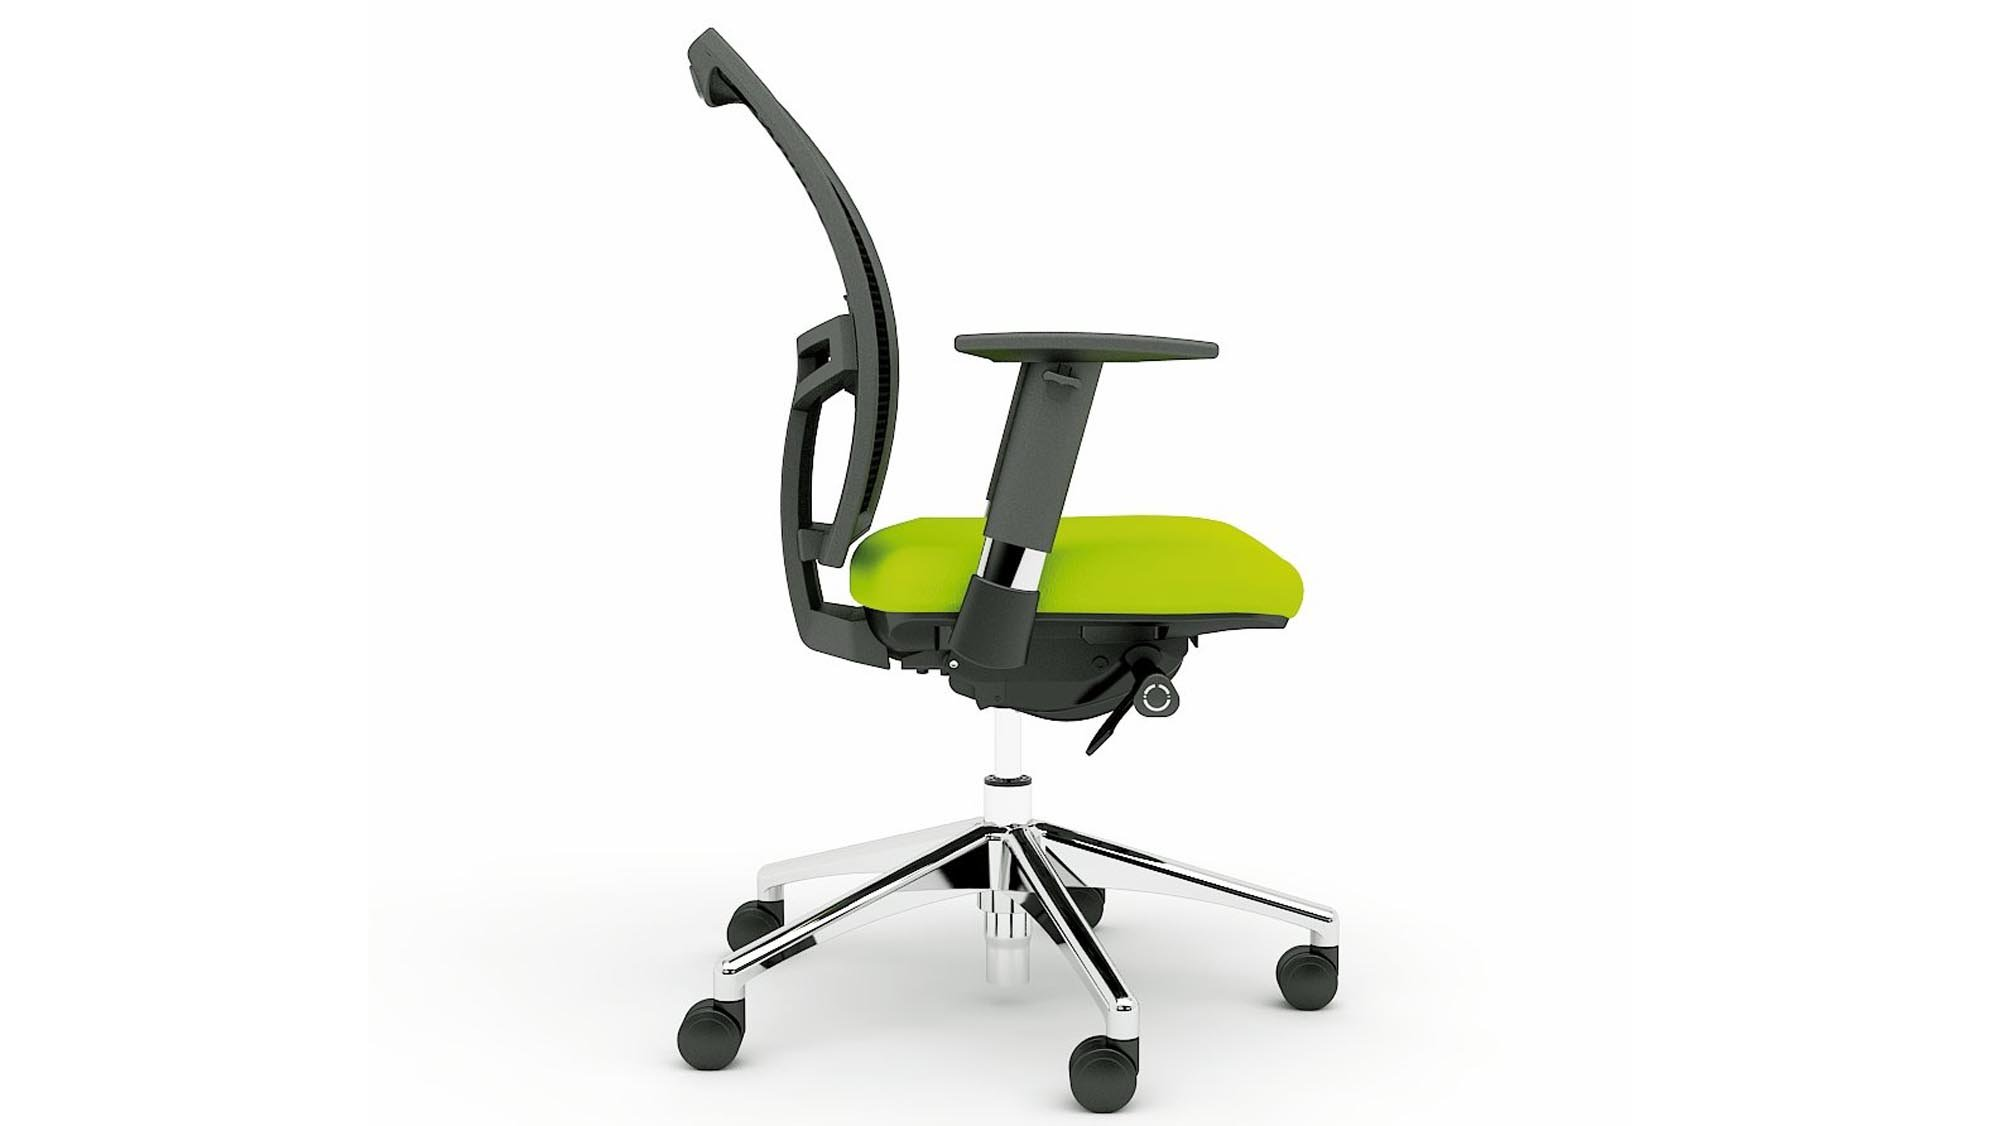 Nice office chairs uk Posture Elite Is Uk Manufacturer Which Offers Great Quality Products At Affordable Prices The Loreto Chair Is Particularly Good Value For Money West Elm Best Office Chair 2018 Style Comfort And Adjustability From As